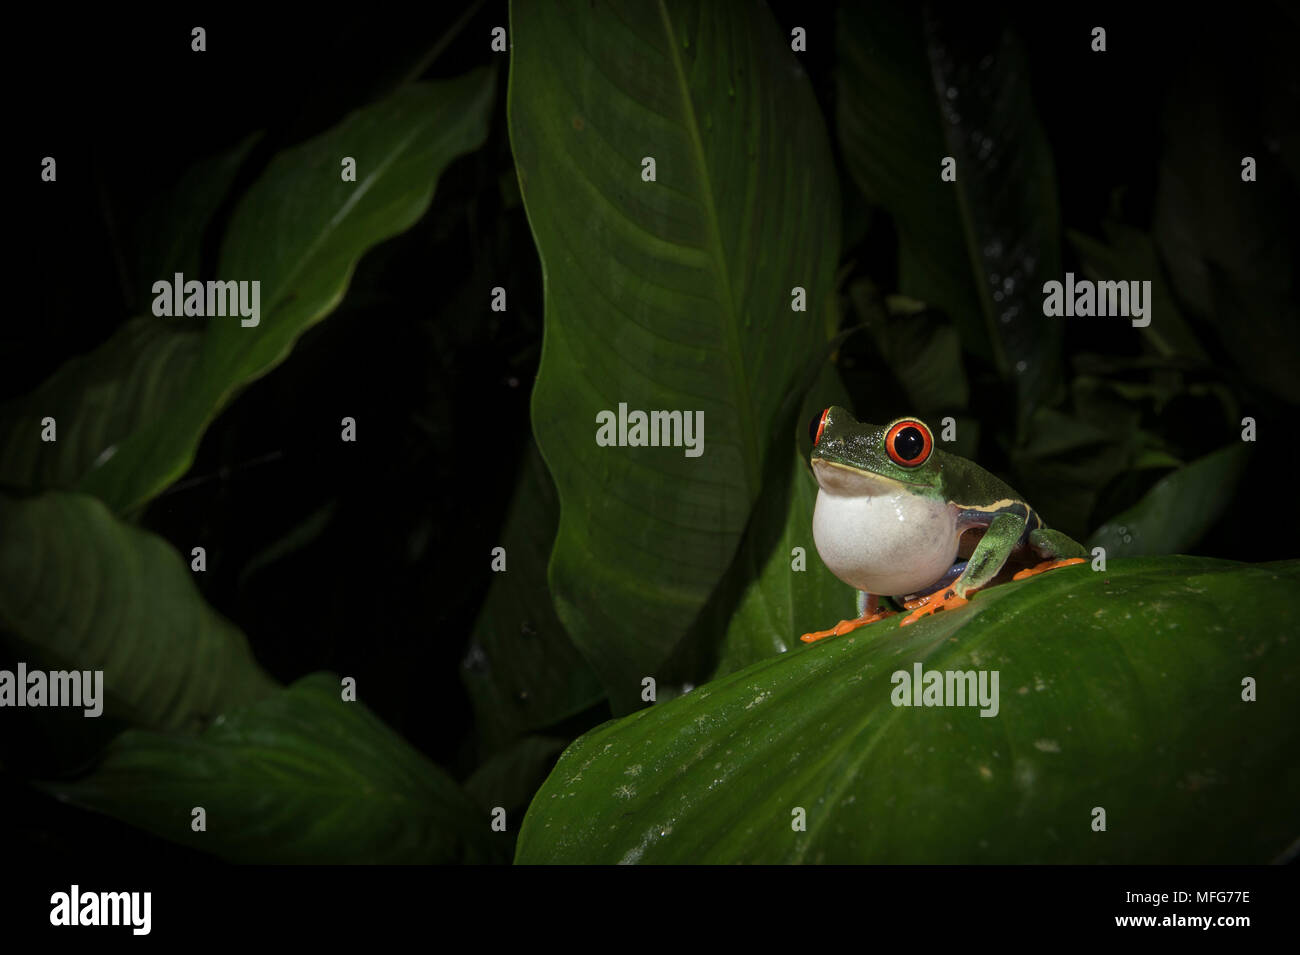 Red-eyed tree frog, Agalychnis callidryas, calls to attract a mate in the rainforest of Tortuguero National Park, Costa Rica - Stock Image